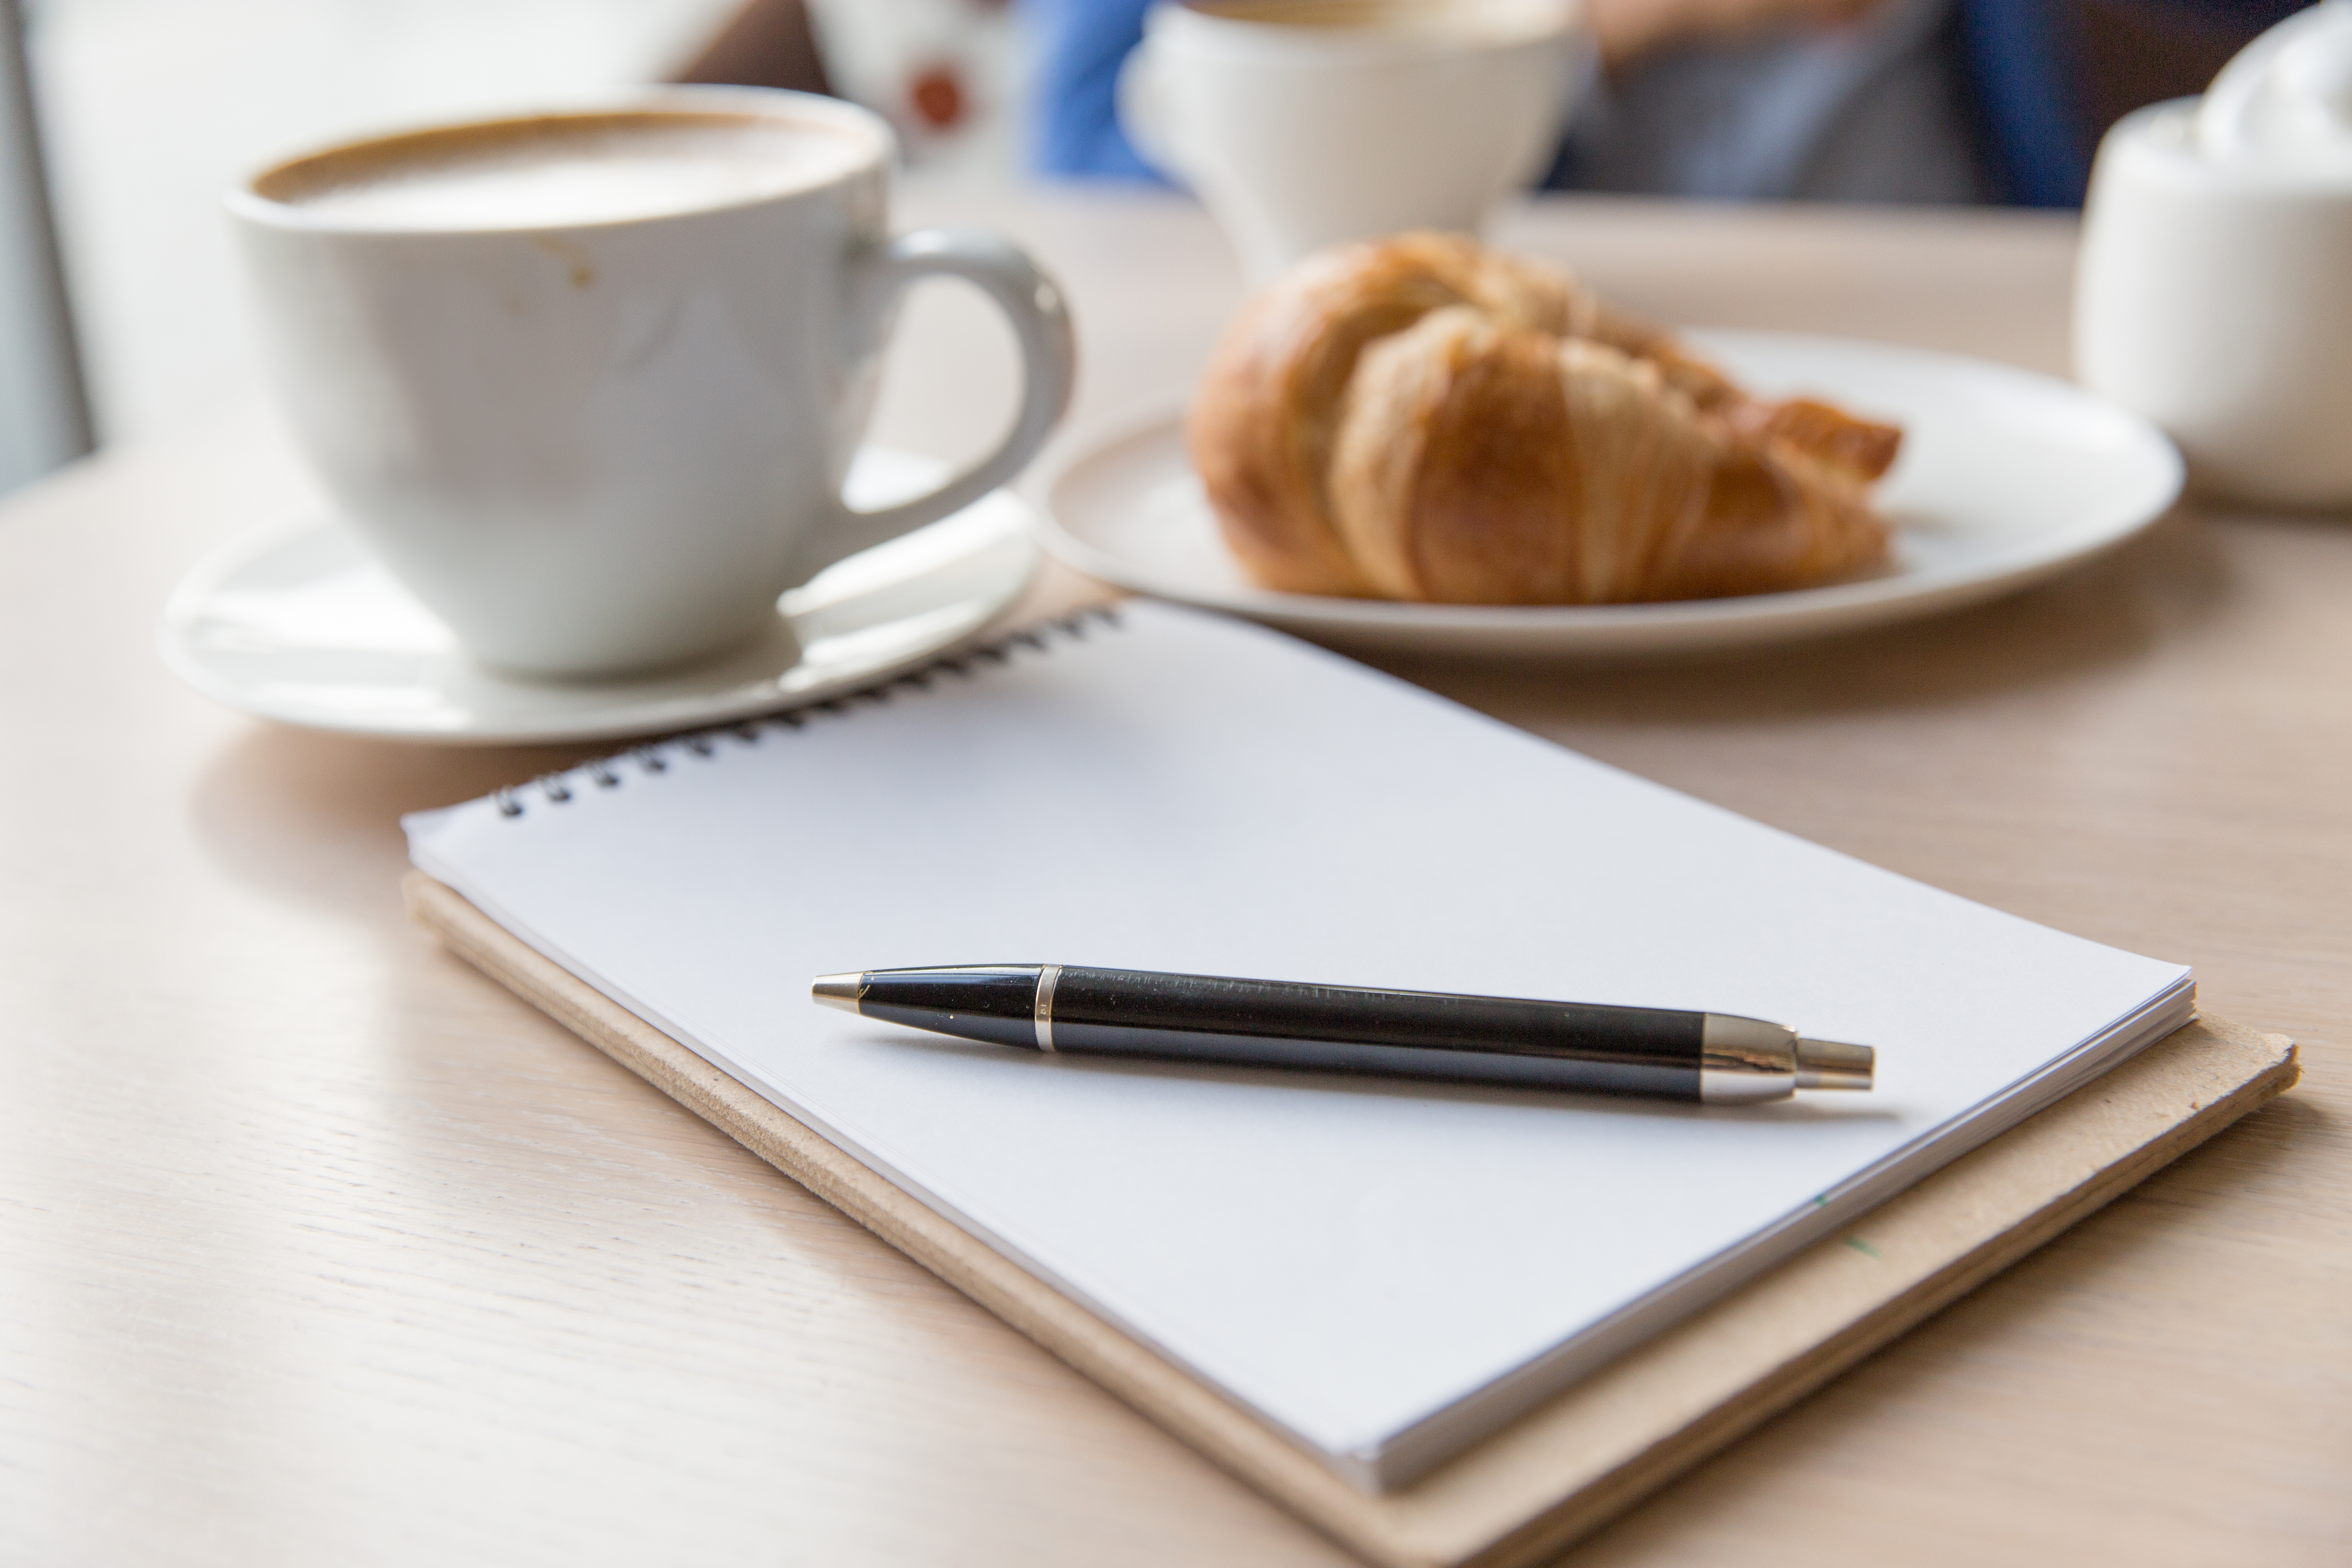 coffee , notebook and  croissant on a wooden table